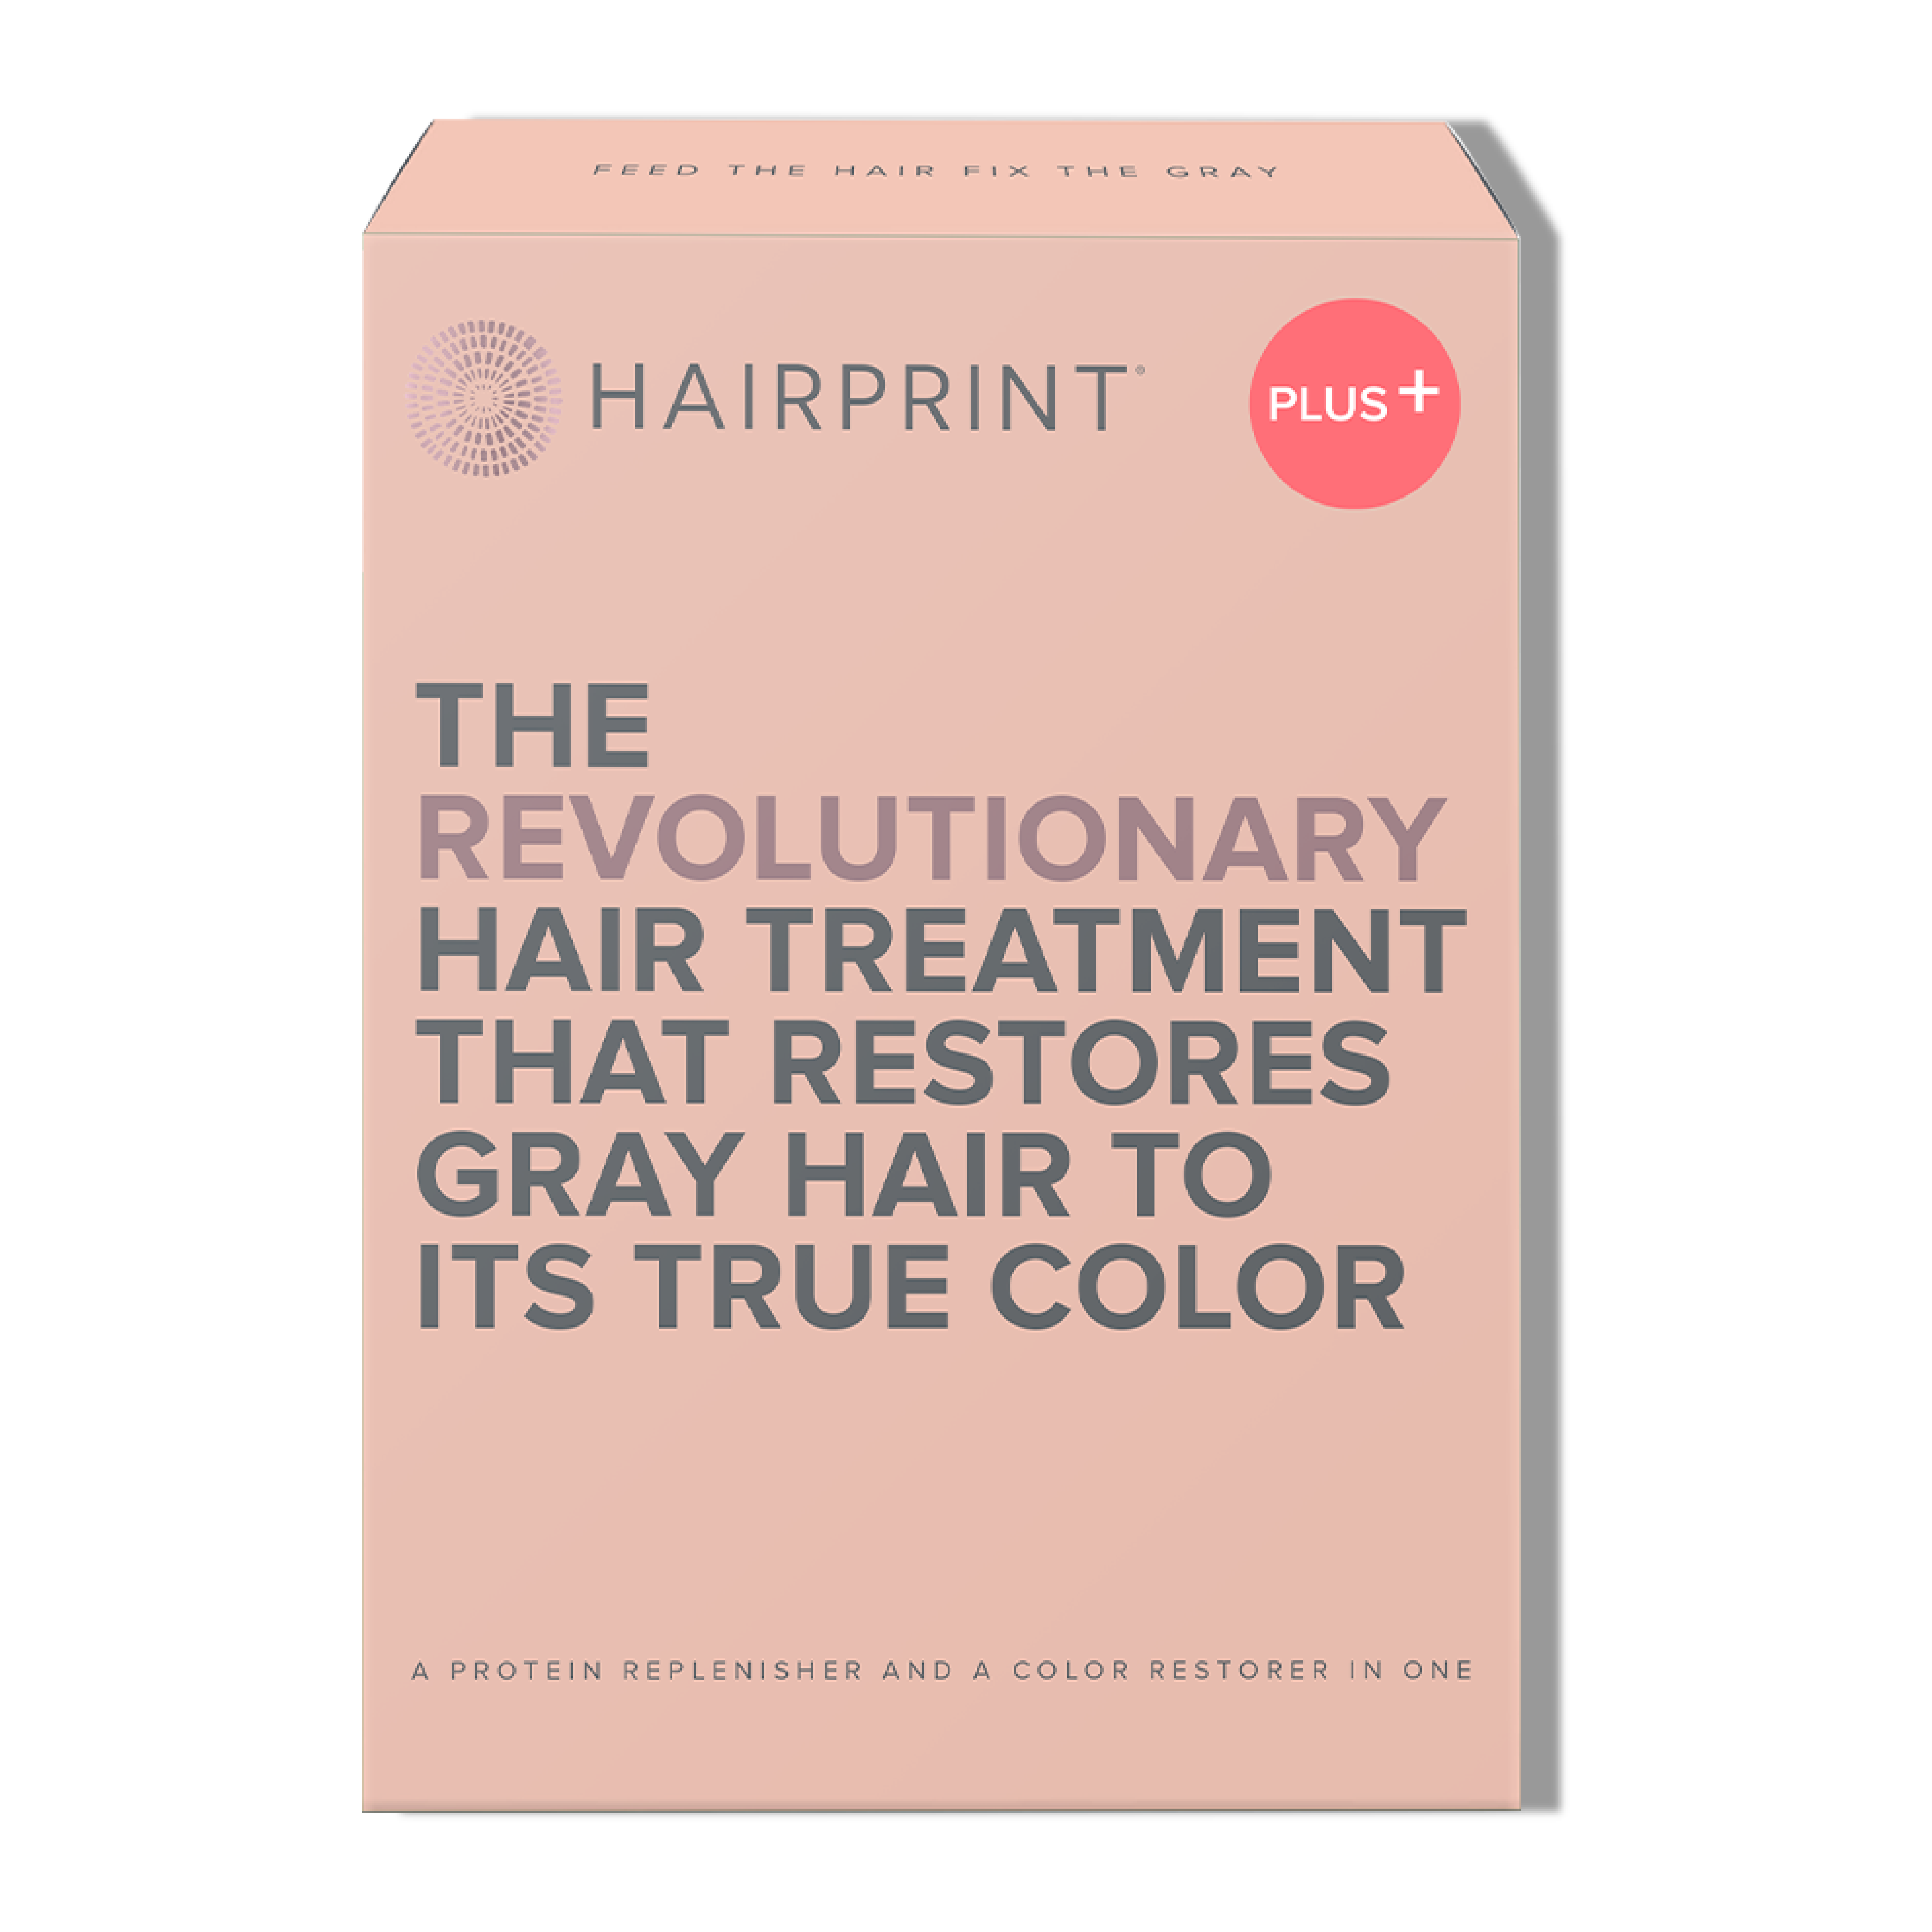 HAIRPRINT PLUS - For thick hair or stubborn grays